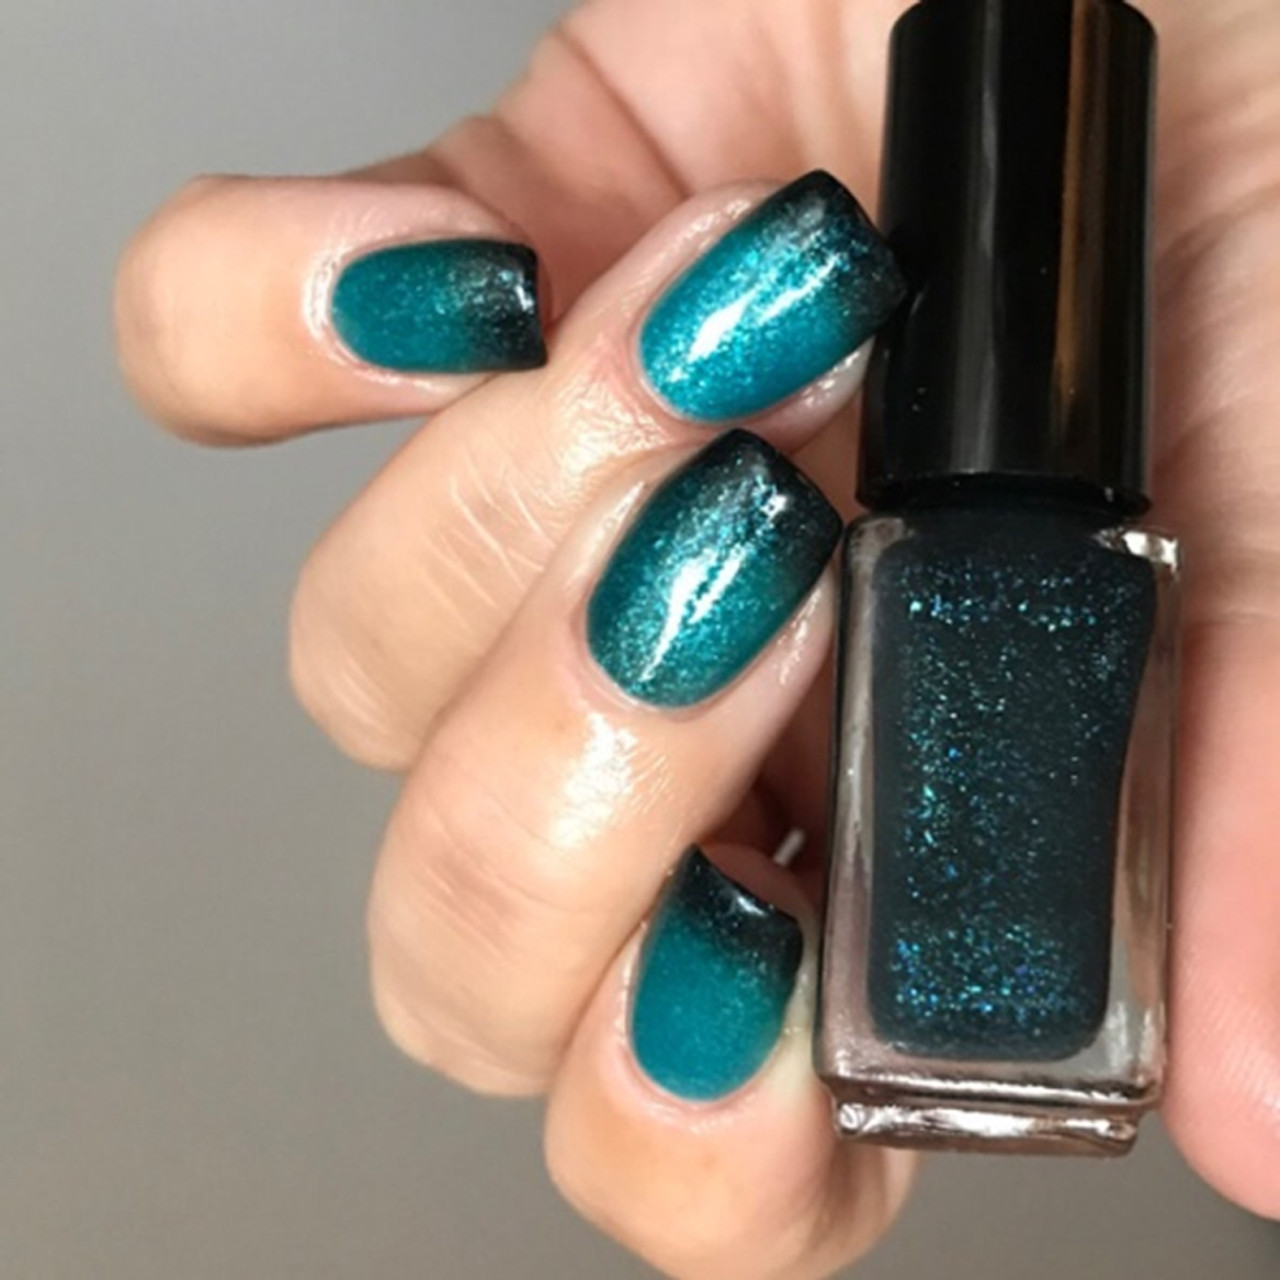 Wraith (Thermal Nail Polish) - Love Pollution